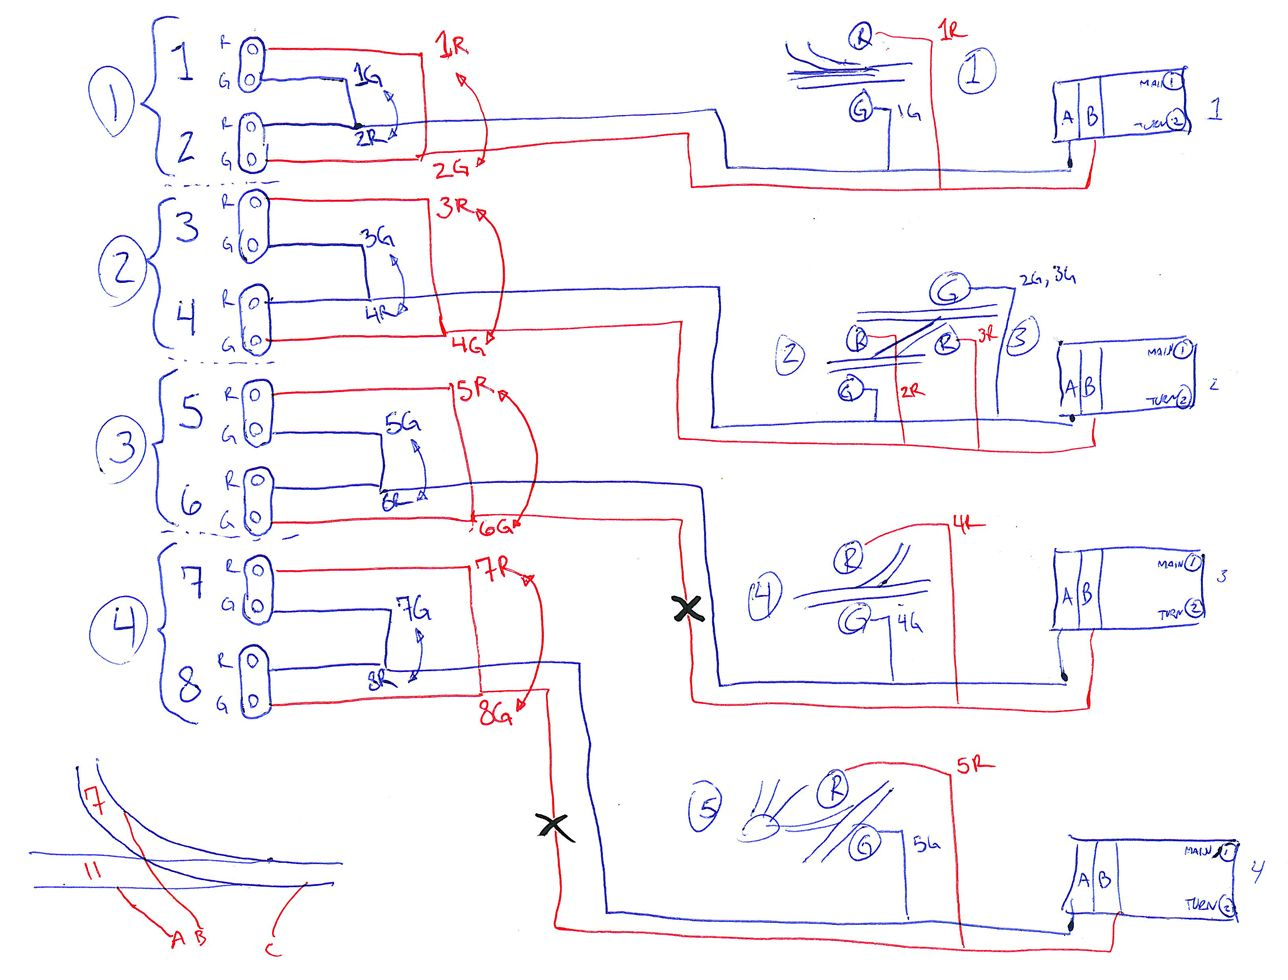 medium resolution of planning sketch depicting wiring for the trackside signals control panel model trains diagram